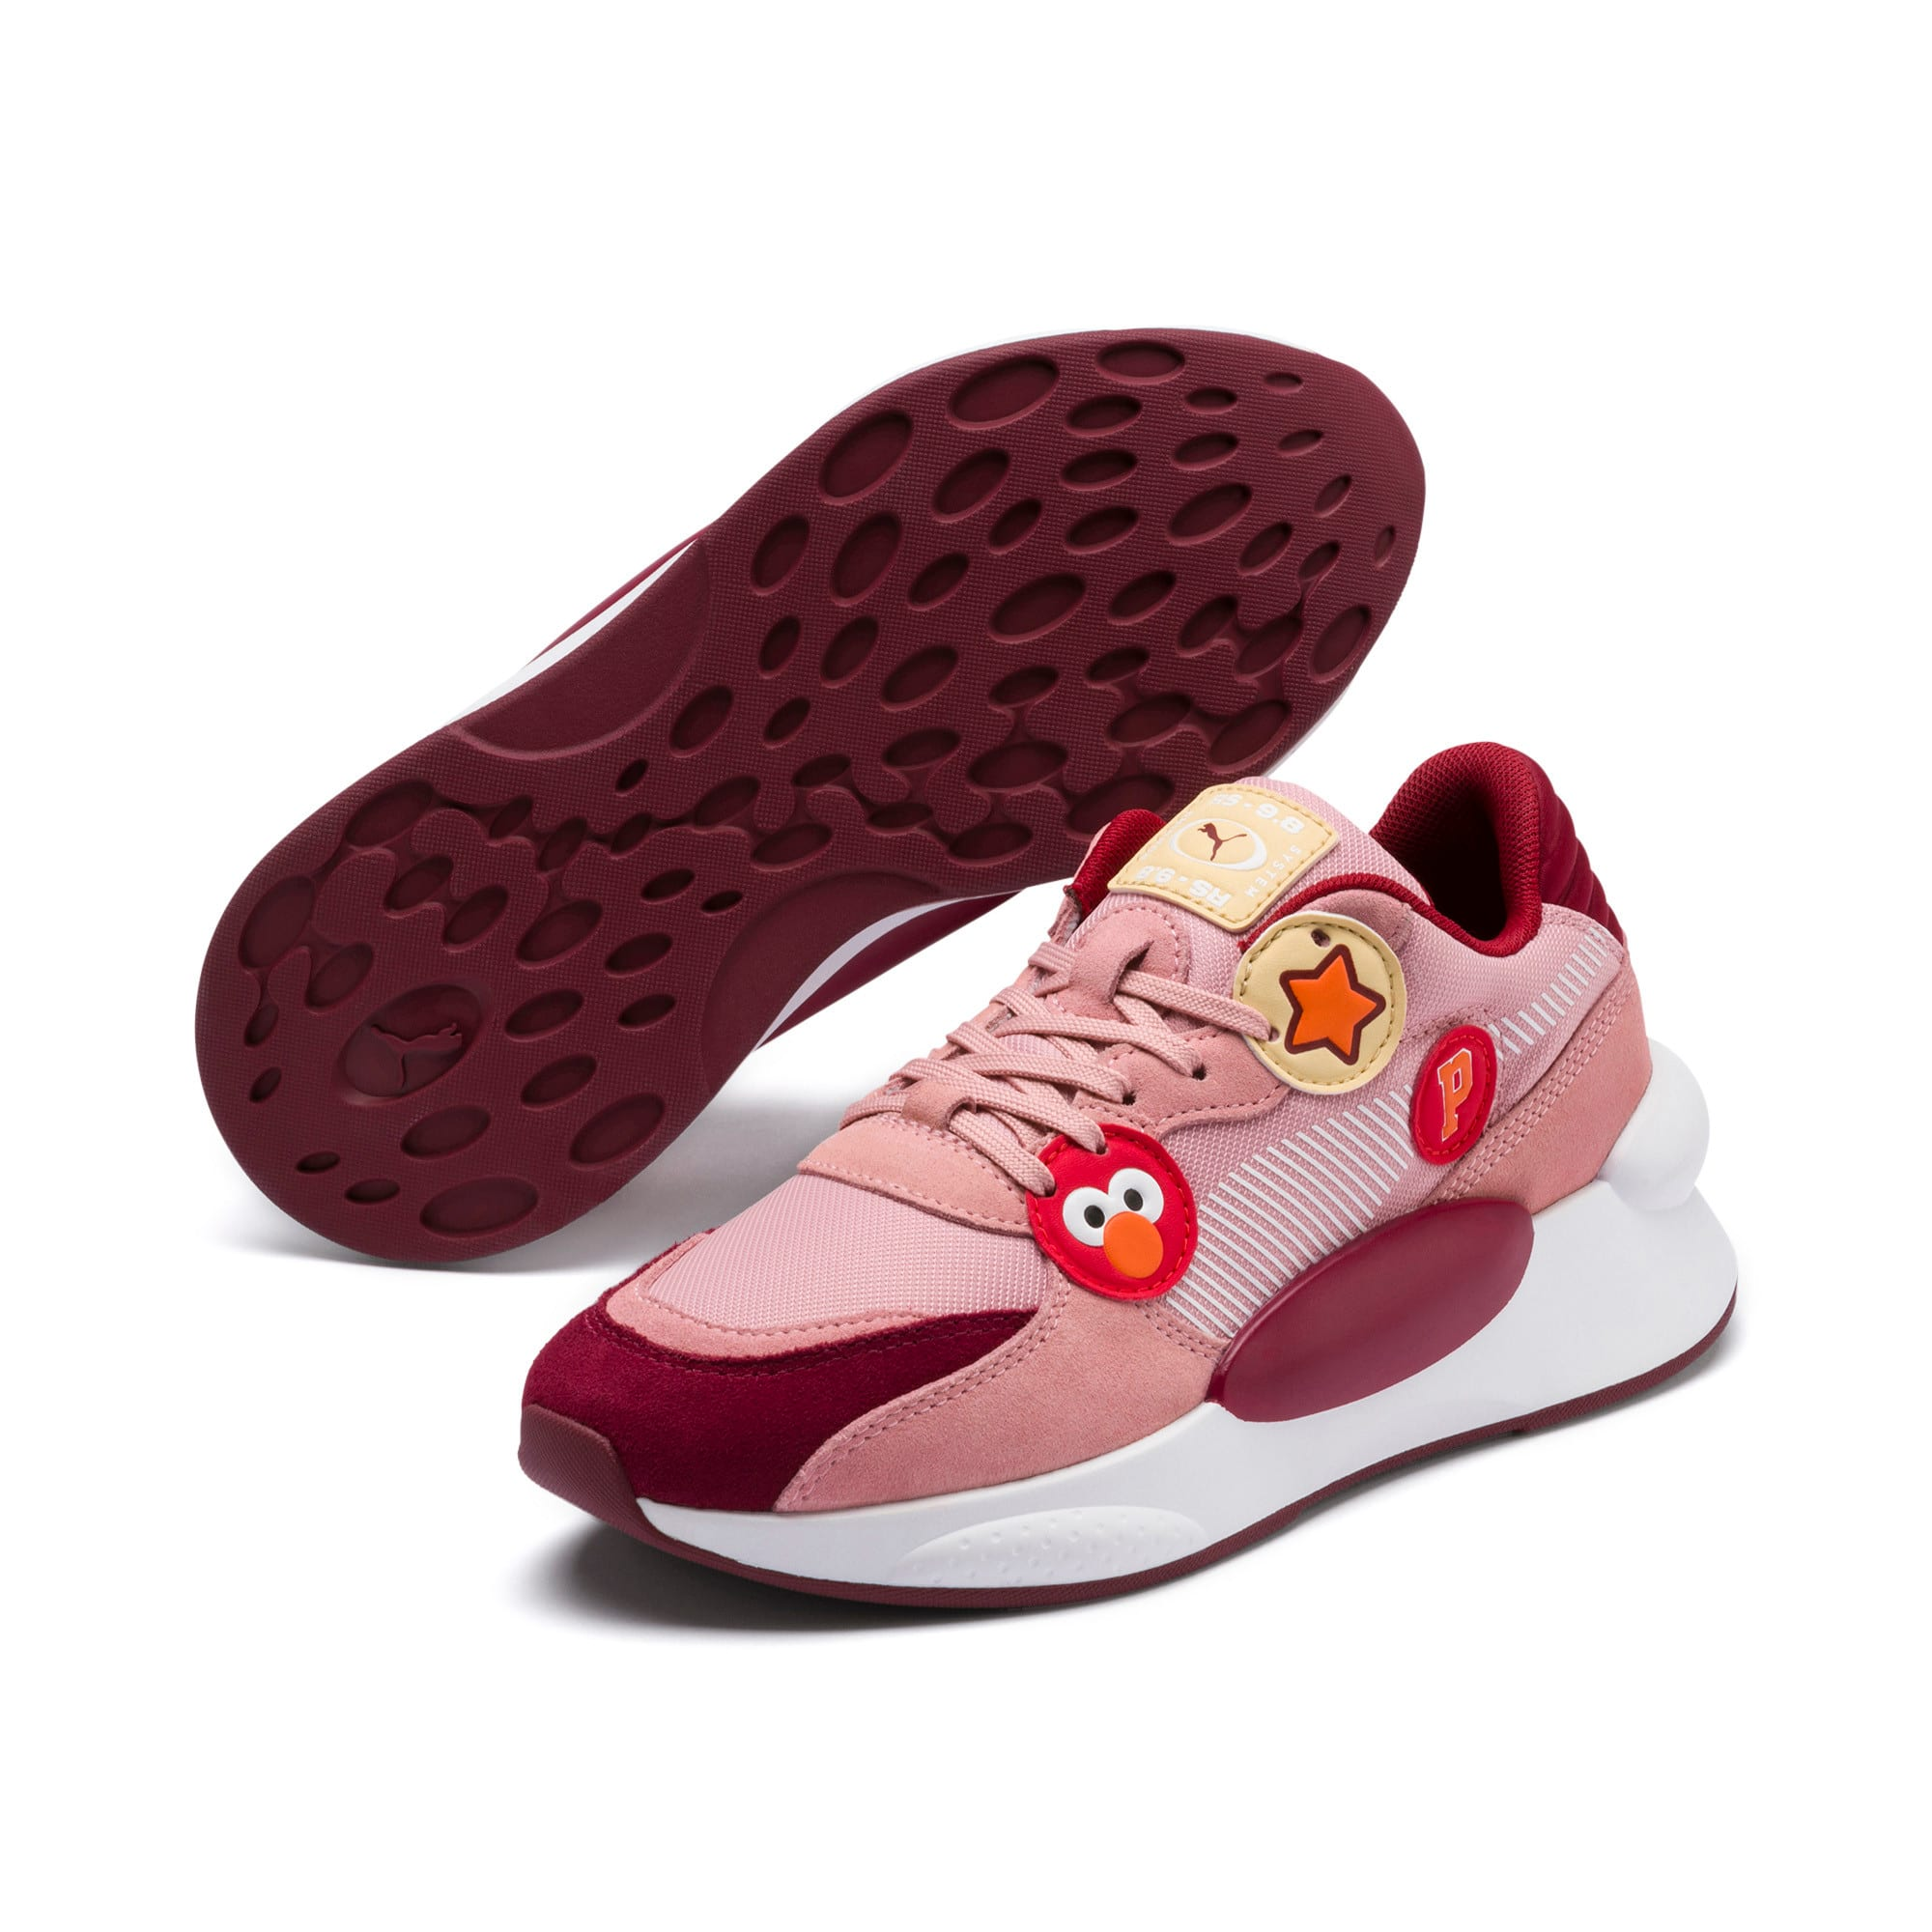 Thumbnail 2 of Sesame Street 50 RS 9.8 Youth Trainers, Bridal Rose-Rhubarb, medium